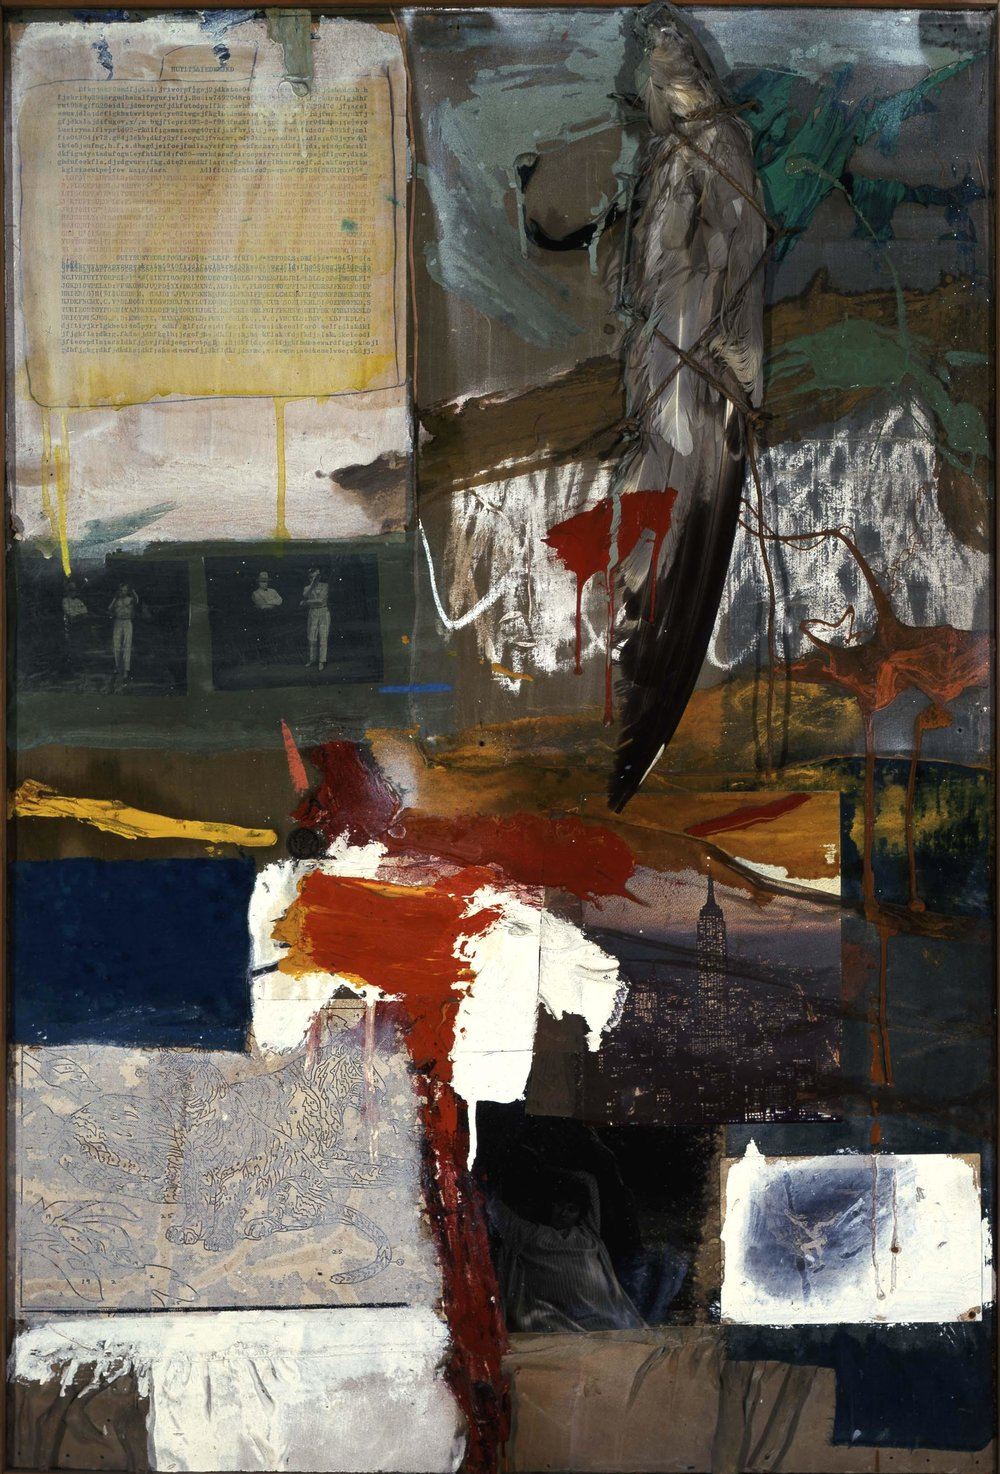 Painting with Grey Wing , Robert Rauschenberg Museum of Contemporary Art, Los Angeles, 1959